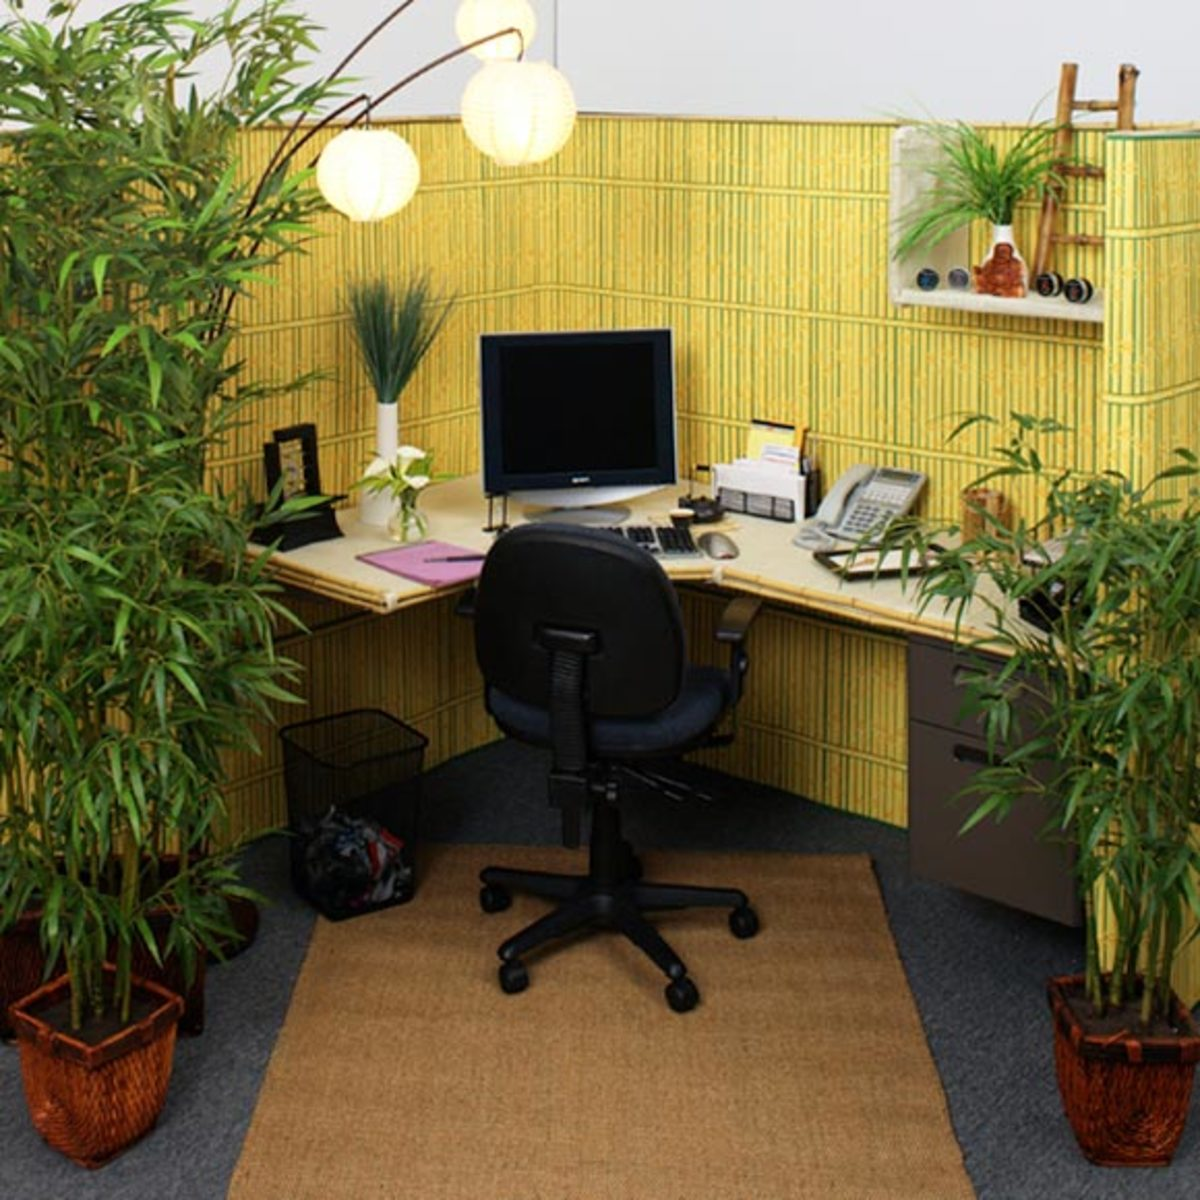 A workspace as tropical getaway